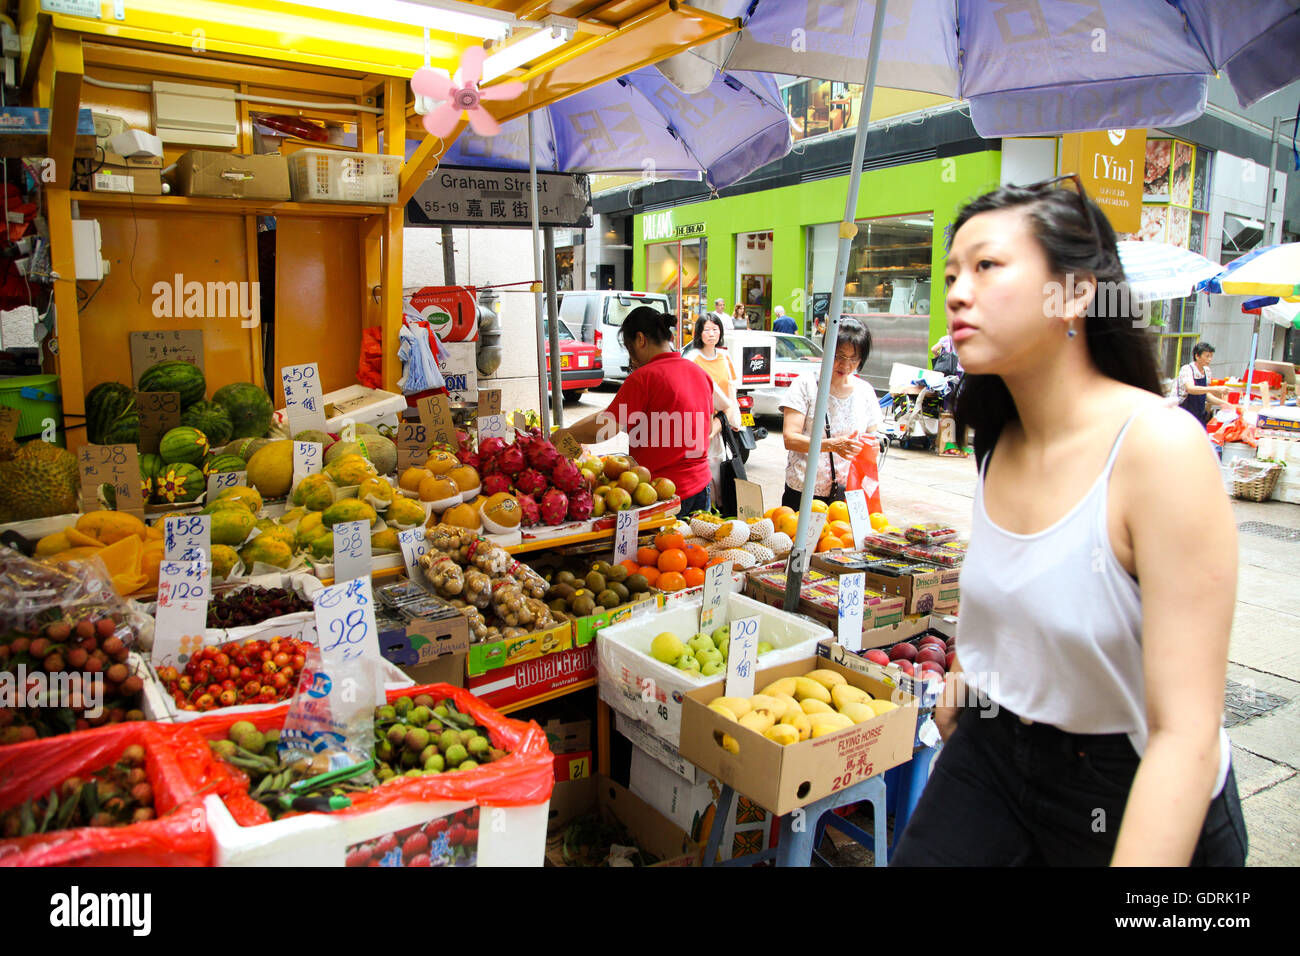 A woman pass by a Hong Kong street market in Kowloon - Stock Image